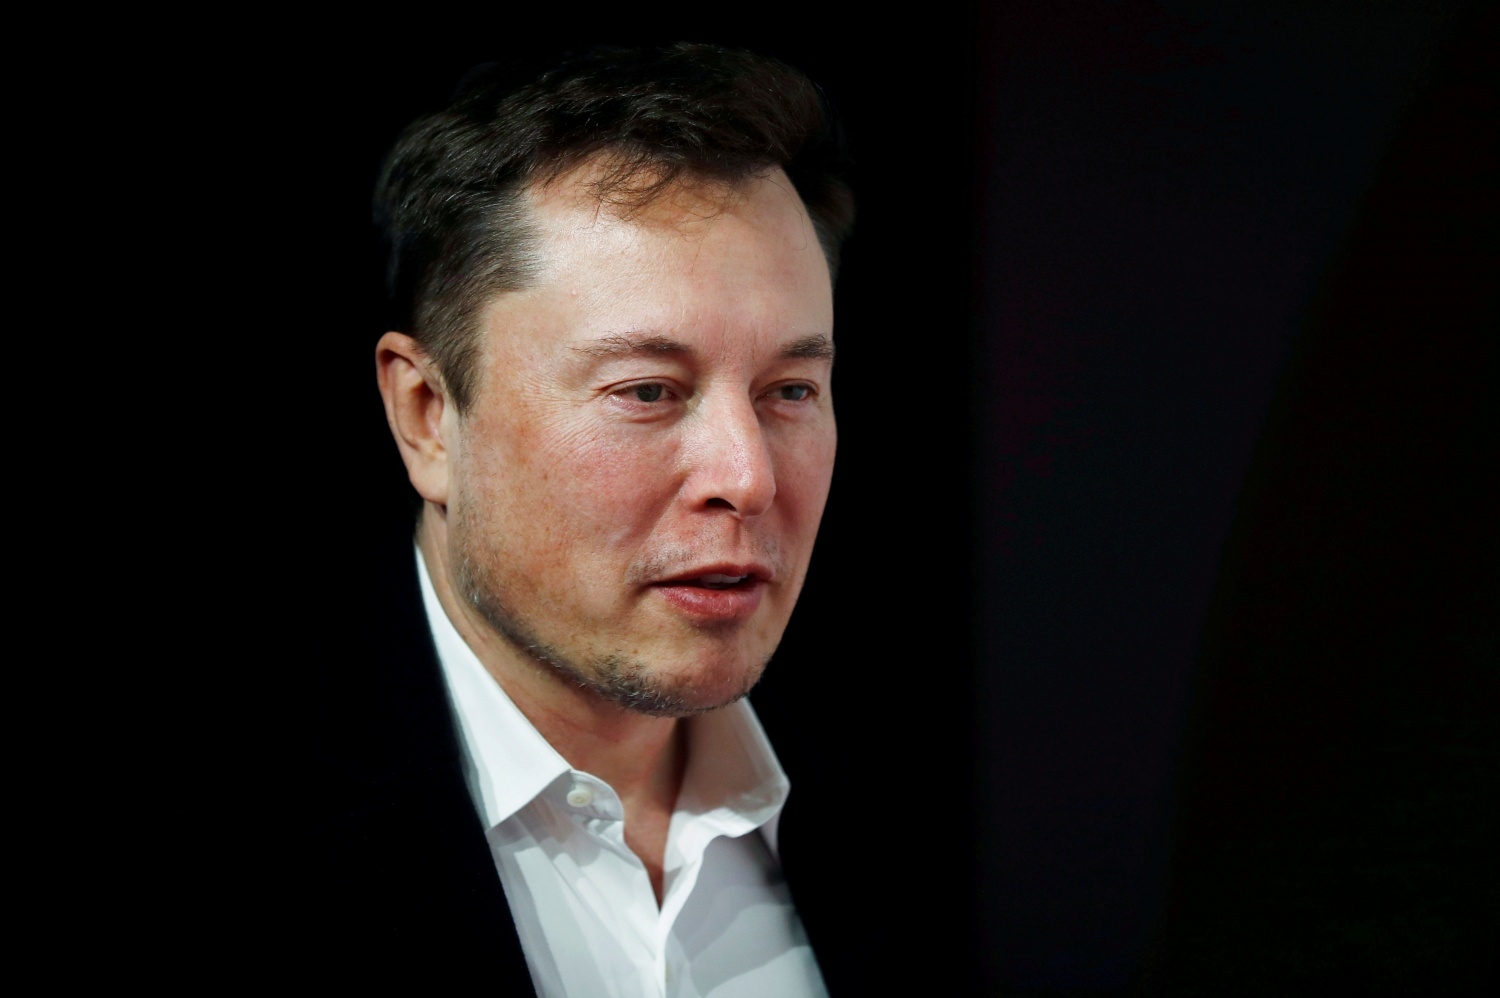 Elon Musk and his ideas